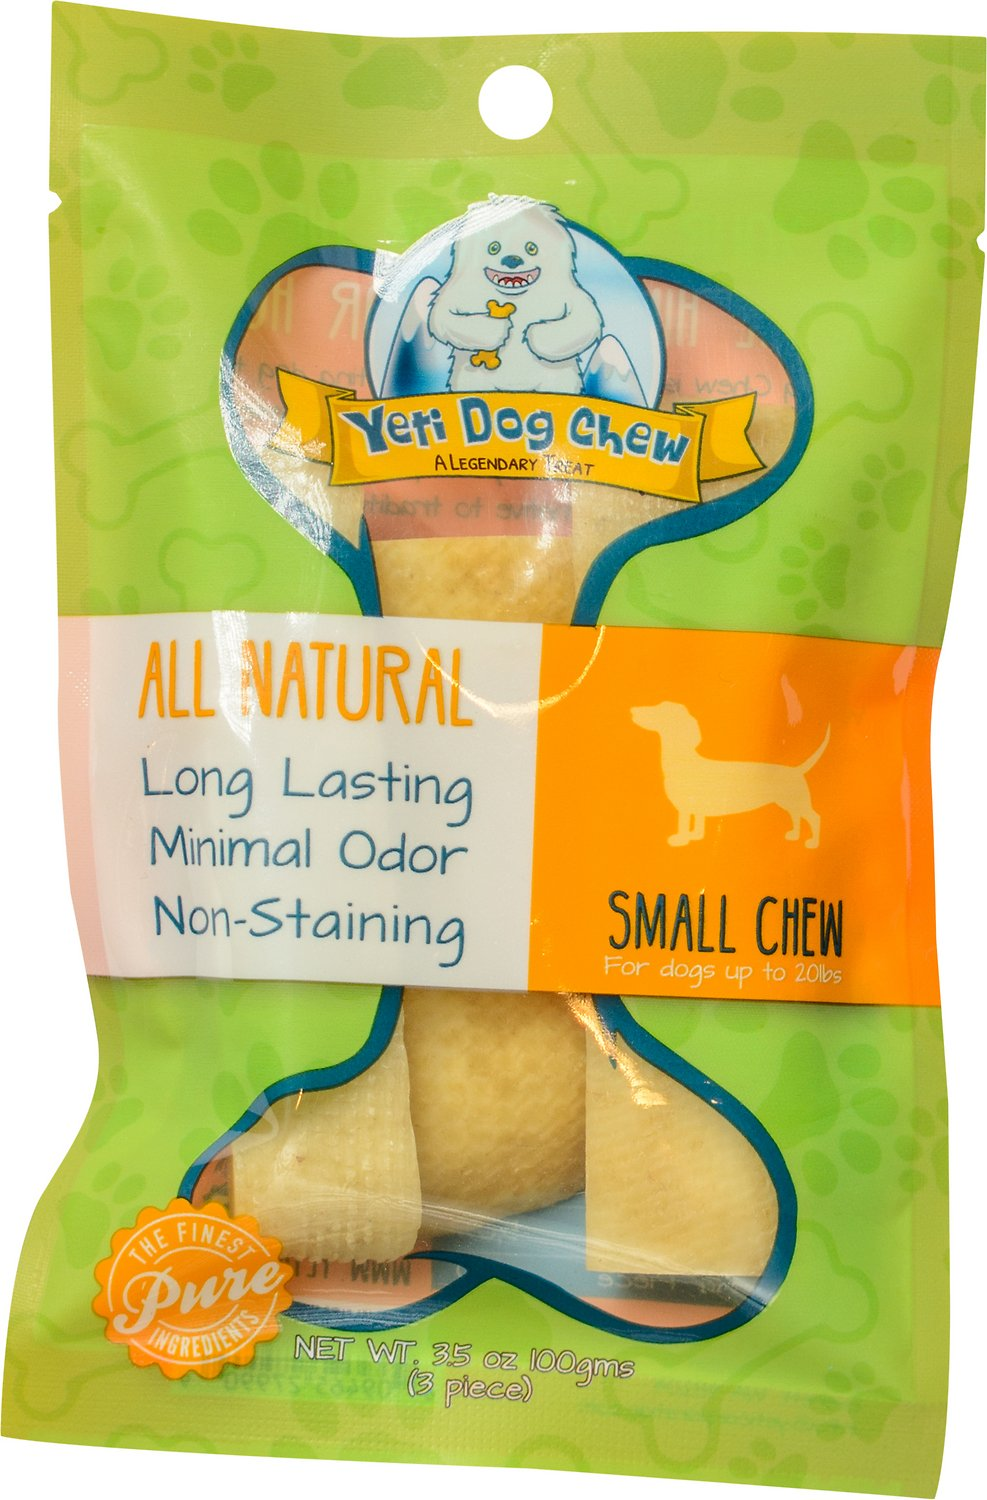 Yeti Dog Chew Small Himalayan Cheese Packaged Dog Treats, 3-count